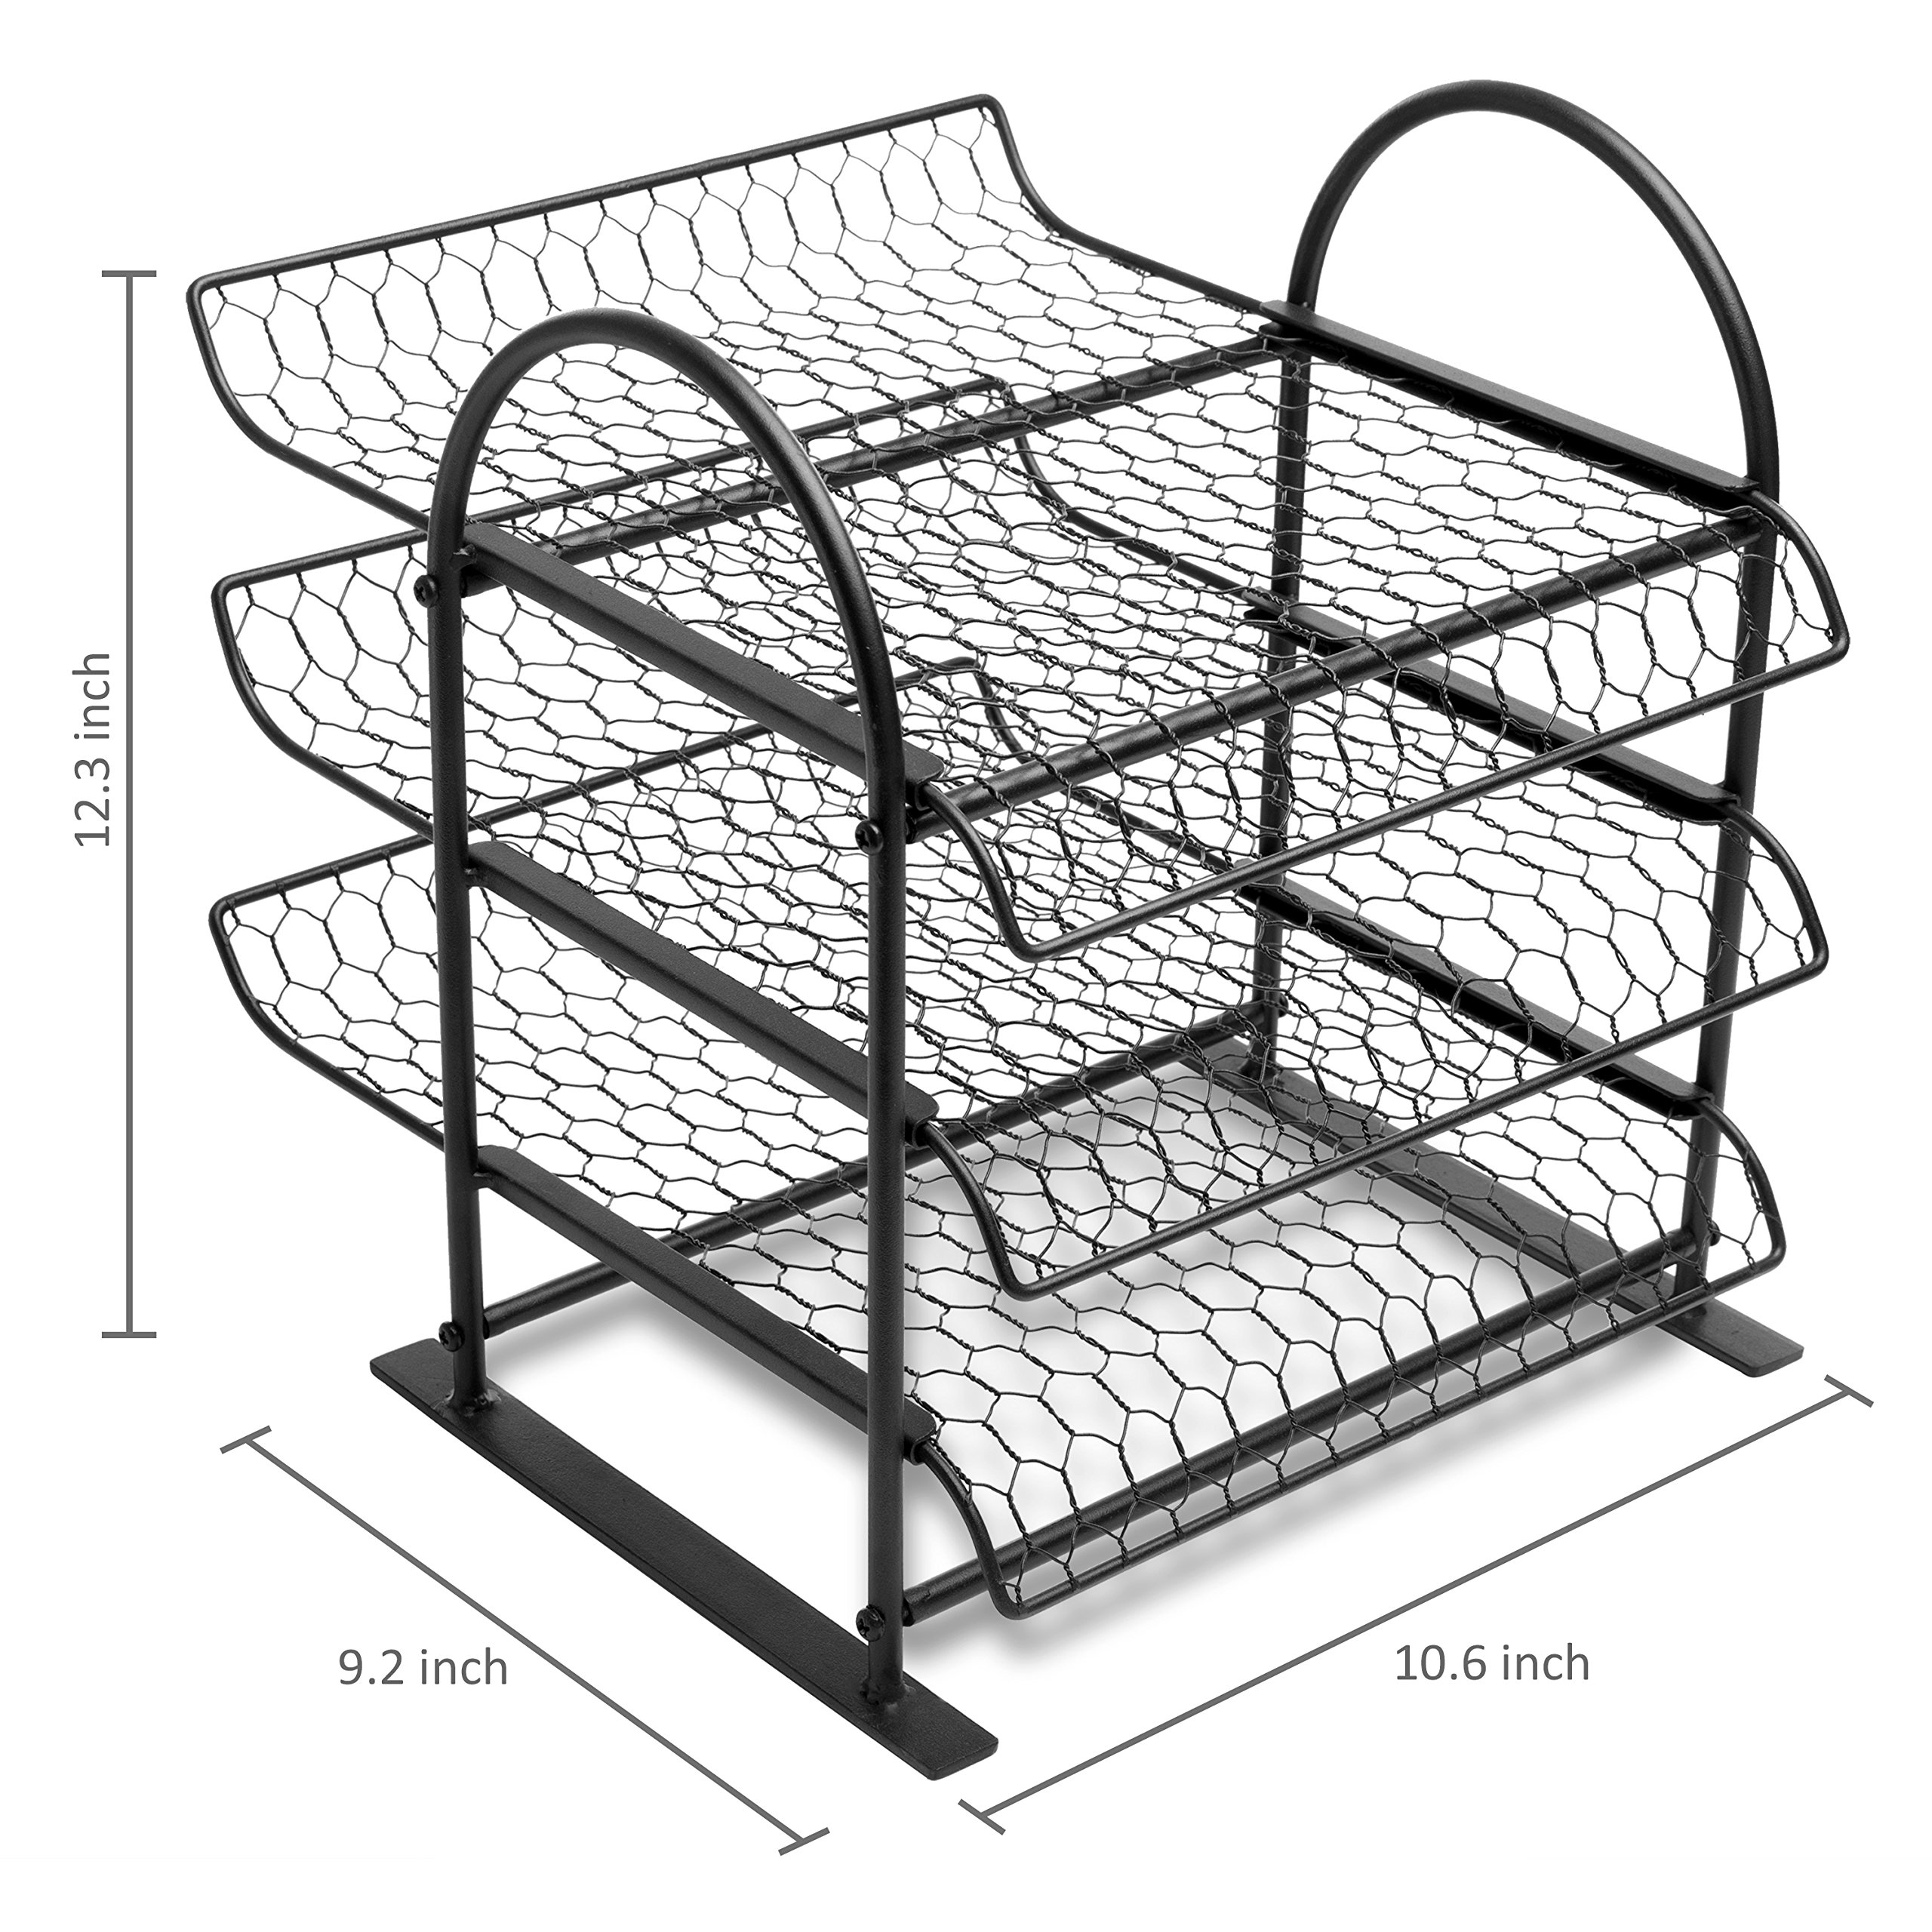 MyGift Metal Chicken Wire Office Document File Organizer with 3-Tier Sliding Trays by MyGift (Image #6)